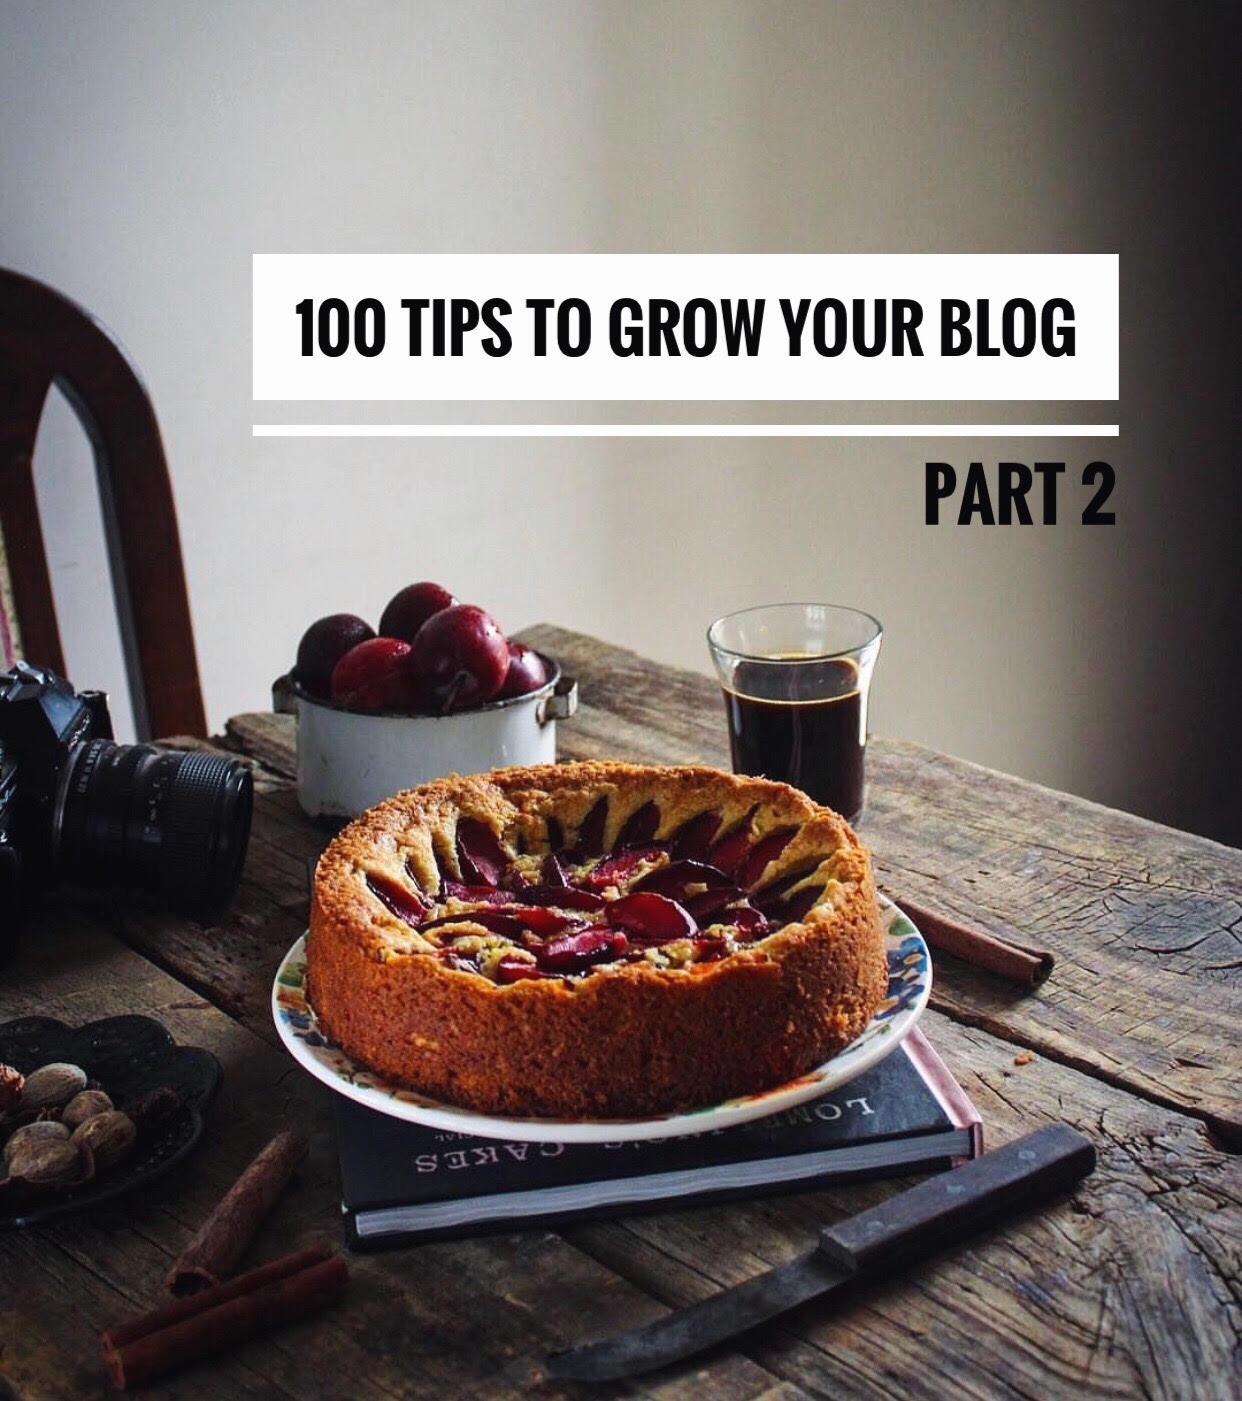 100 TIPS TO GROW YOUR BLOG